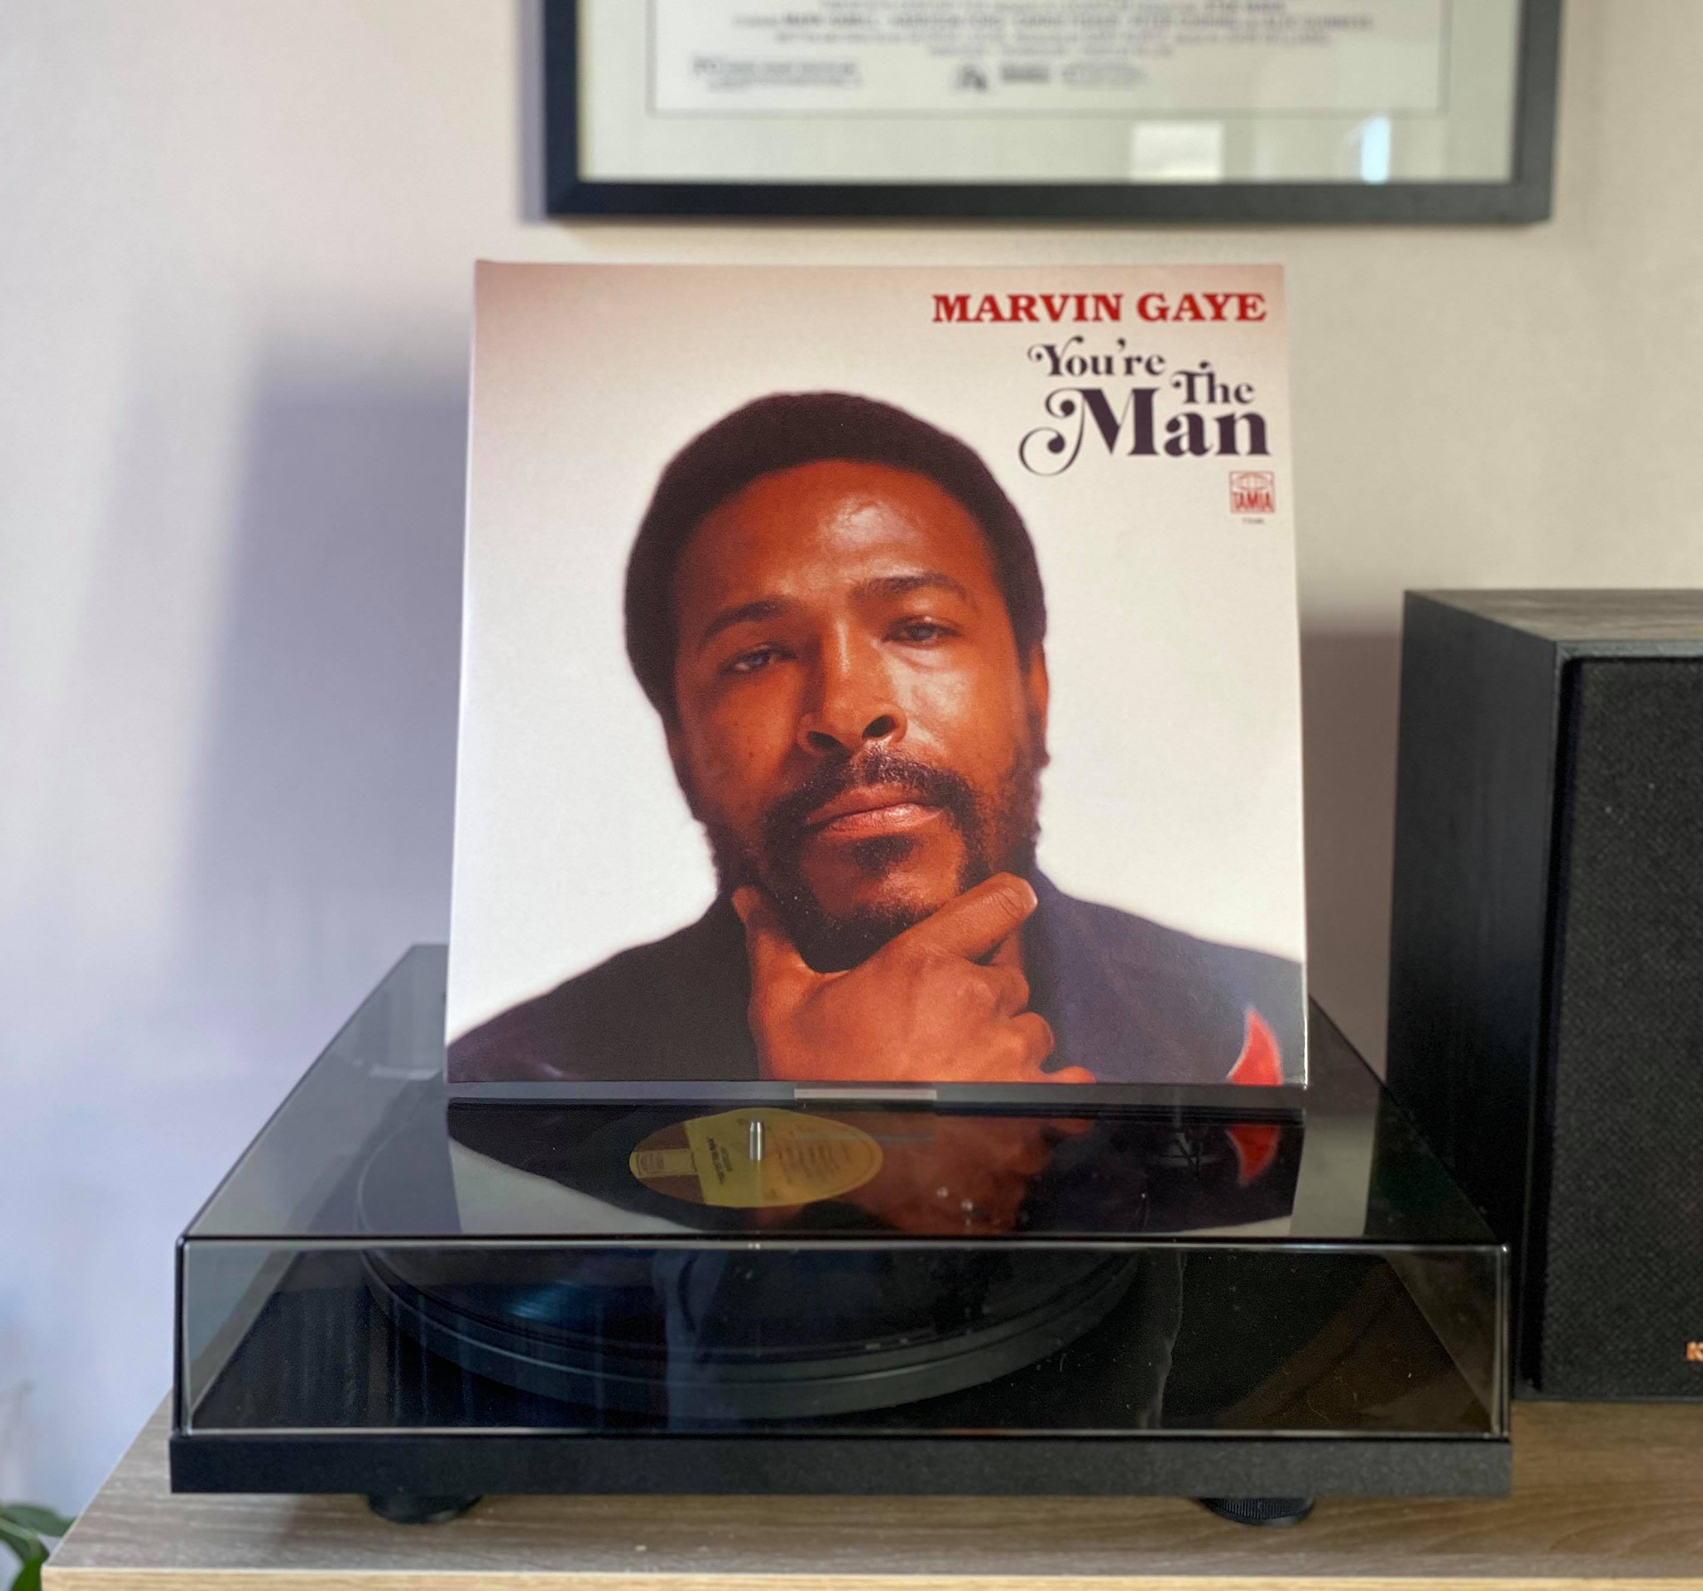 ON THE TURNTABLE: Marvin Gaye - You're The Man